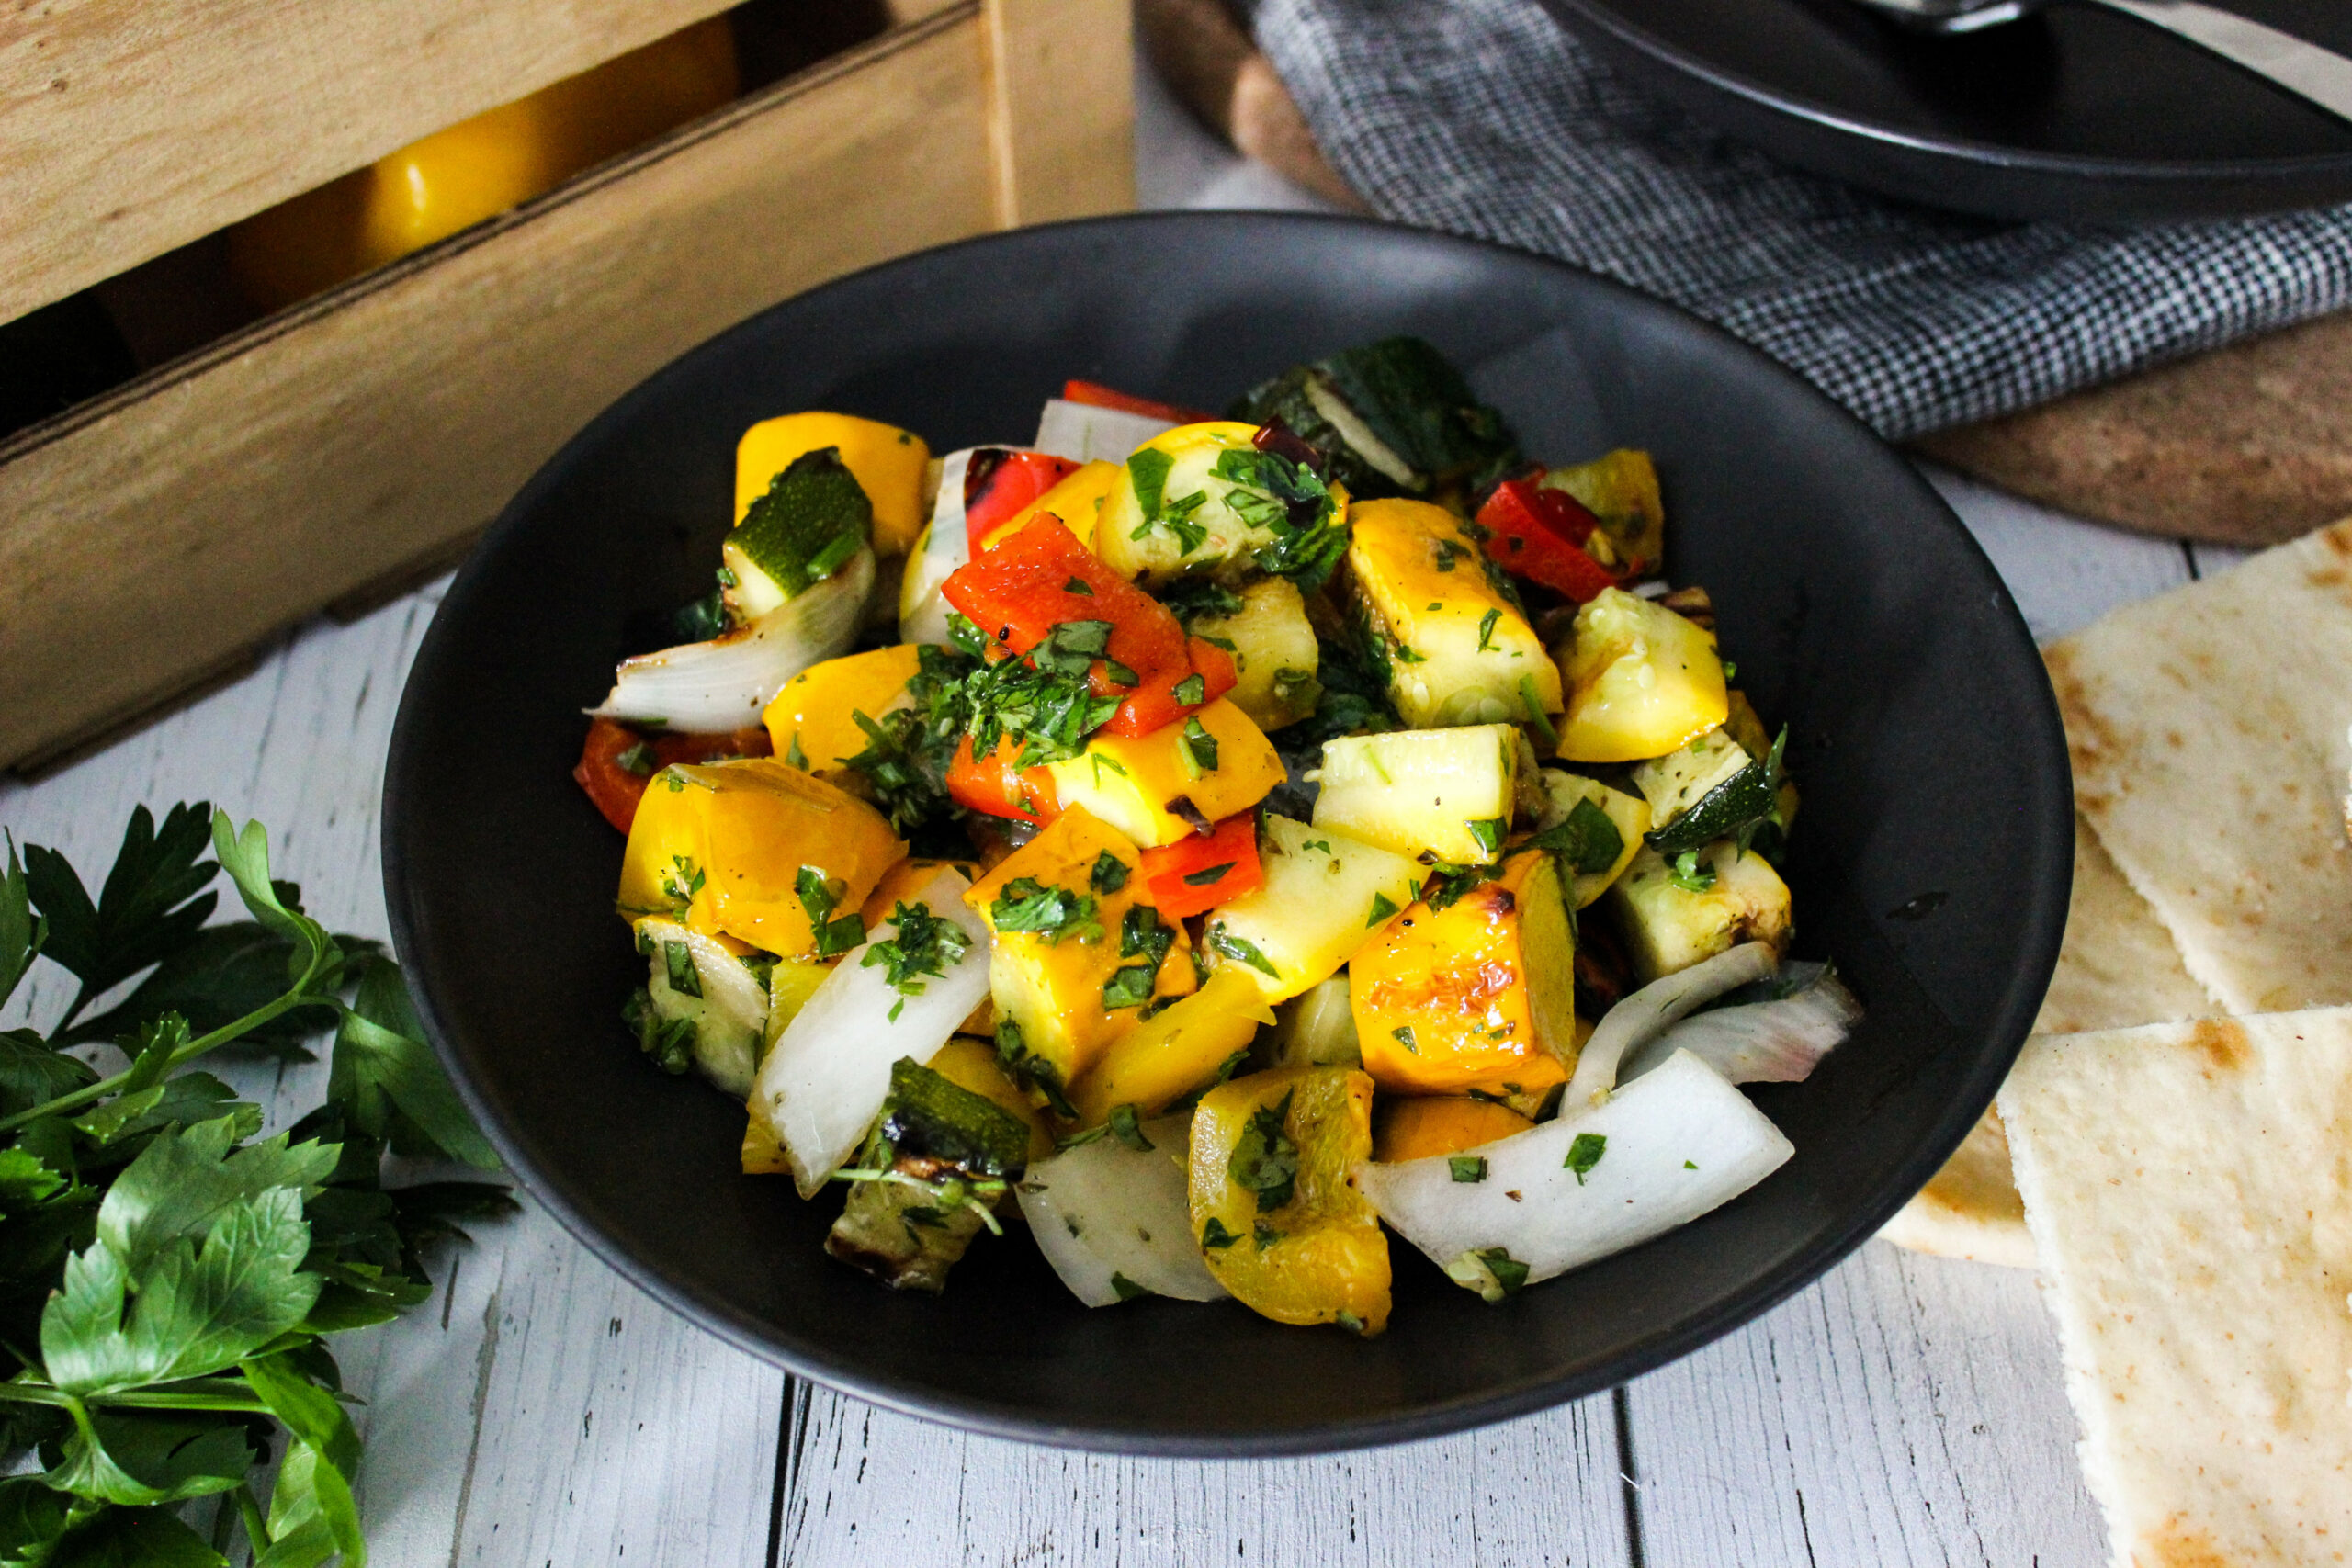 Mia Kouppa: Grilled zucchini and pepper salad - yellow pepper recipes vegetarian